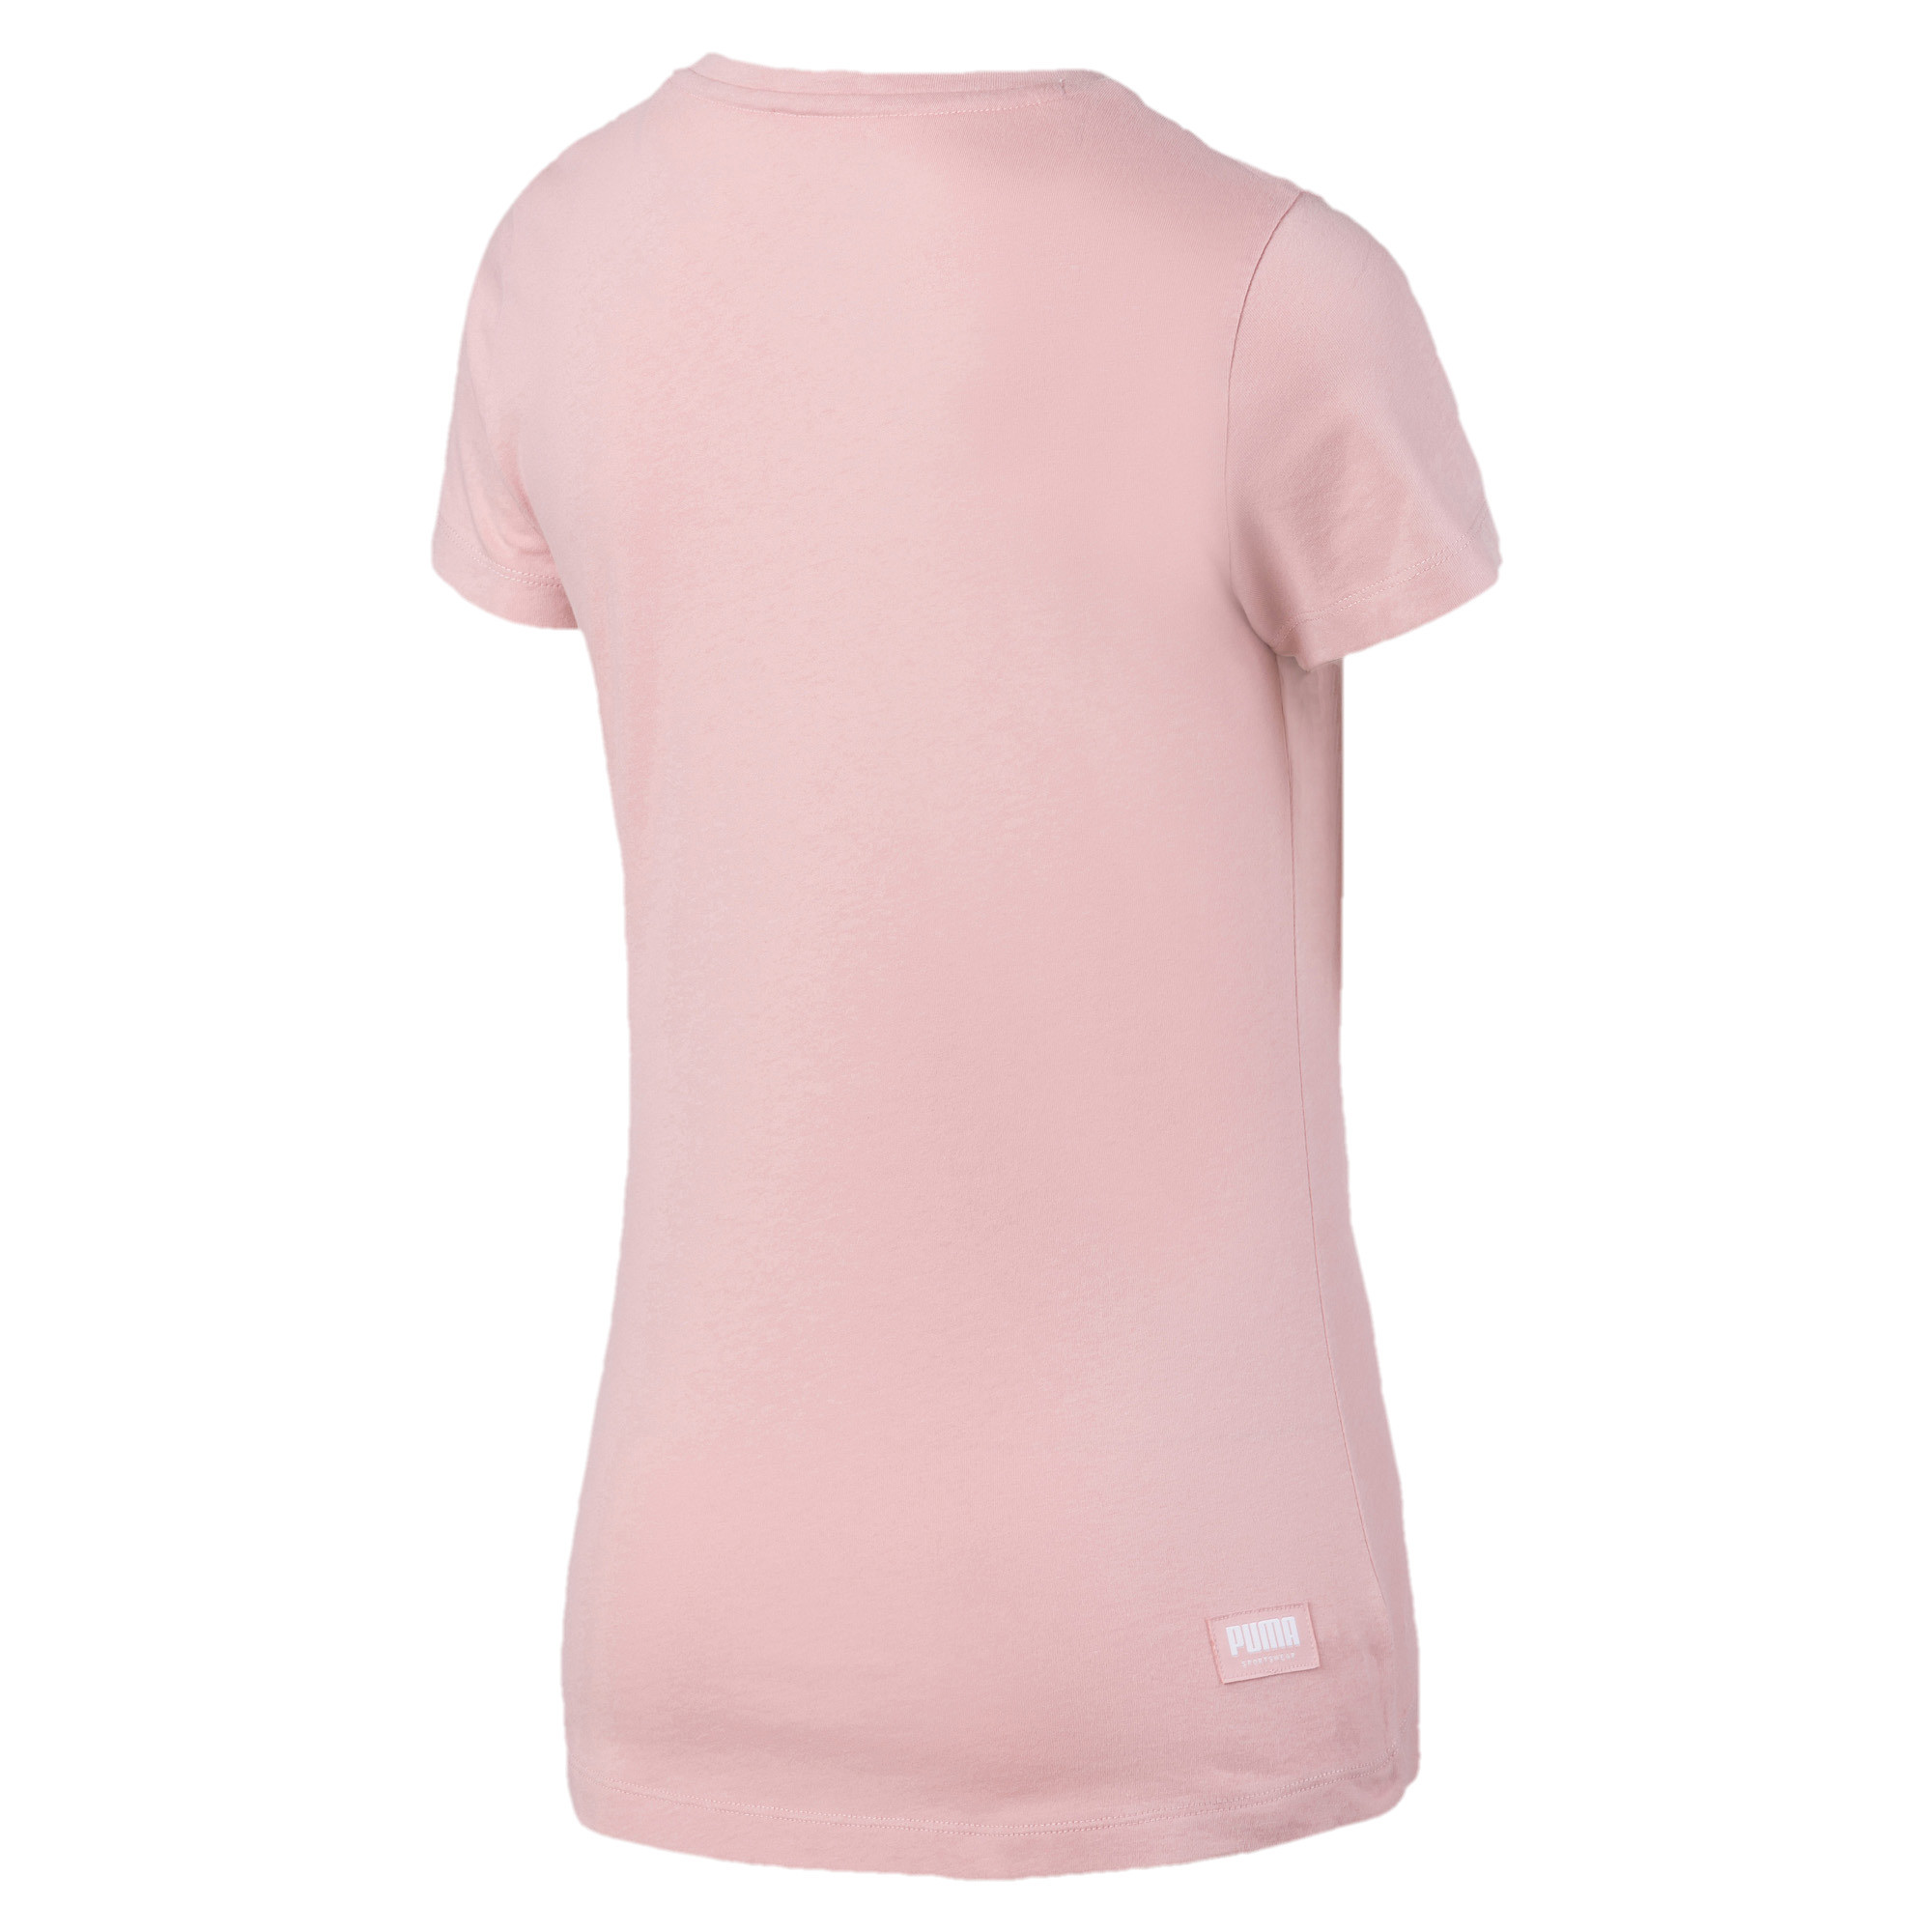 PUMA-Women-039-s-Athletics-Tee thumbnail 12